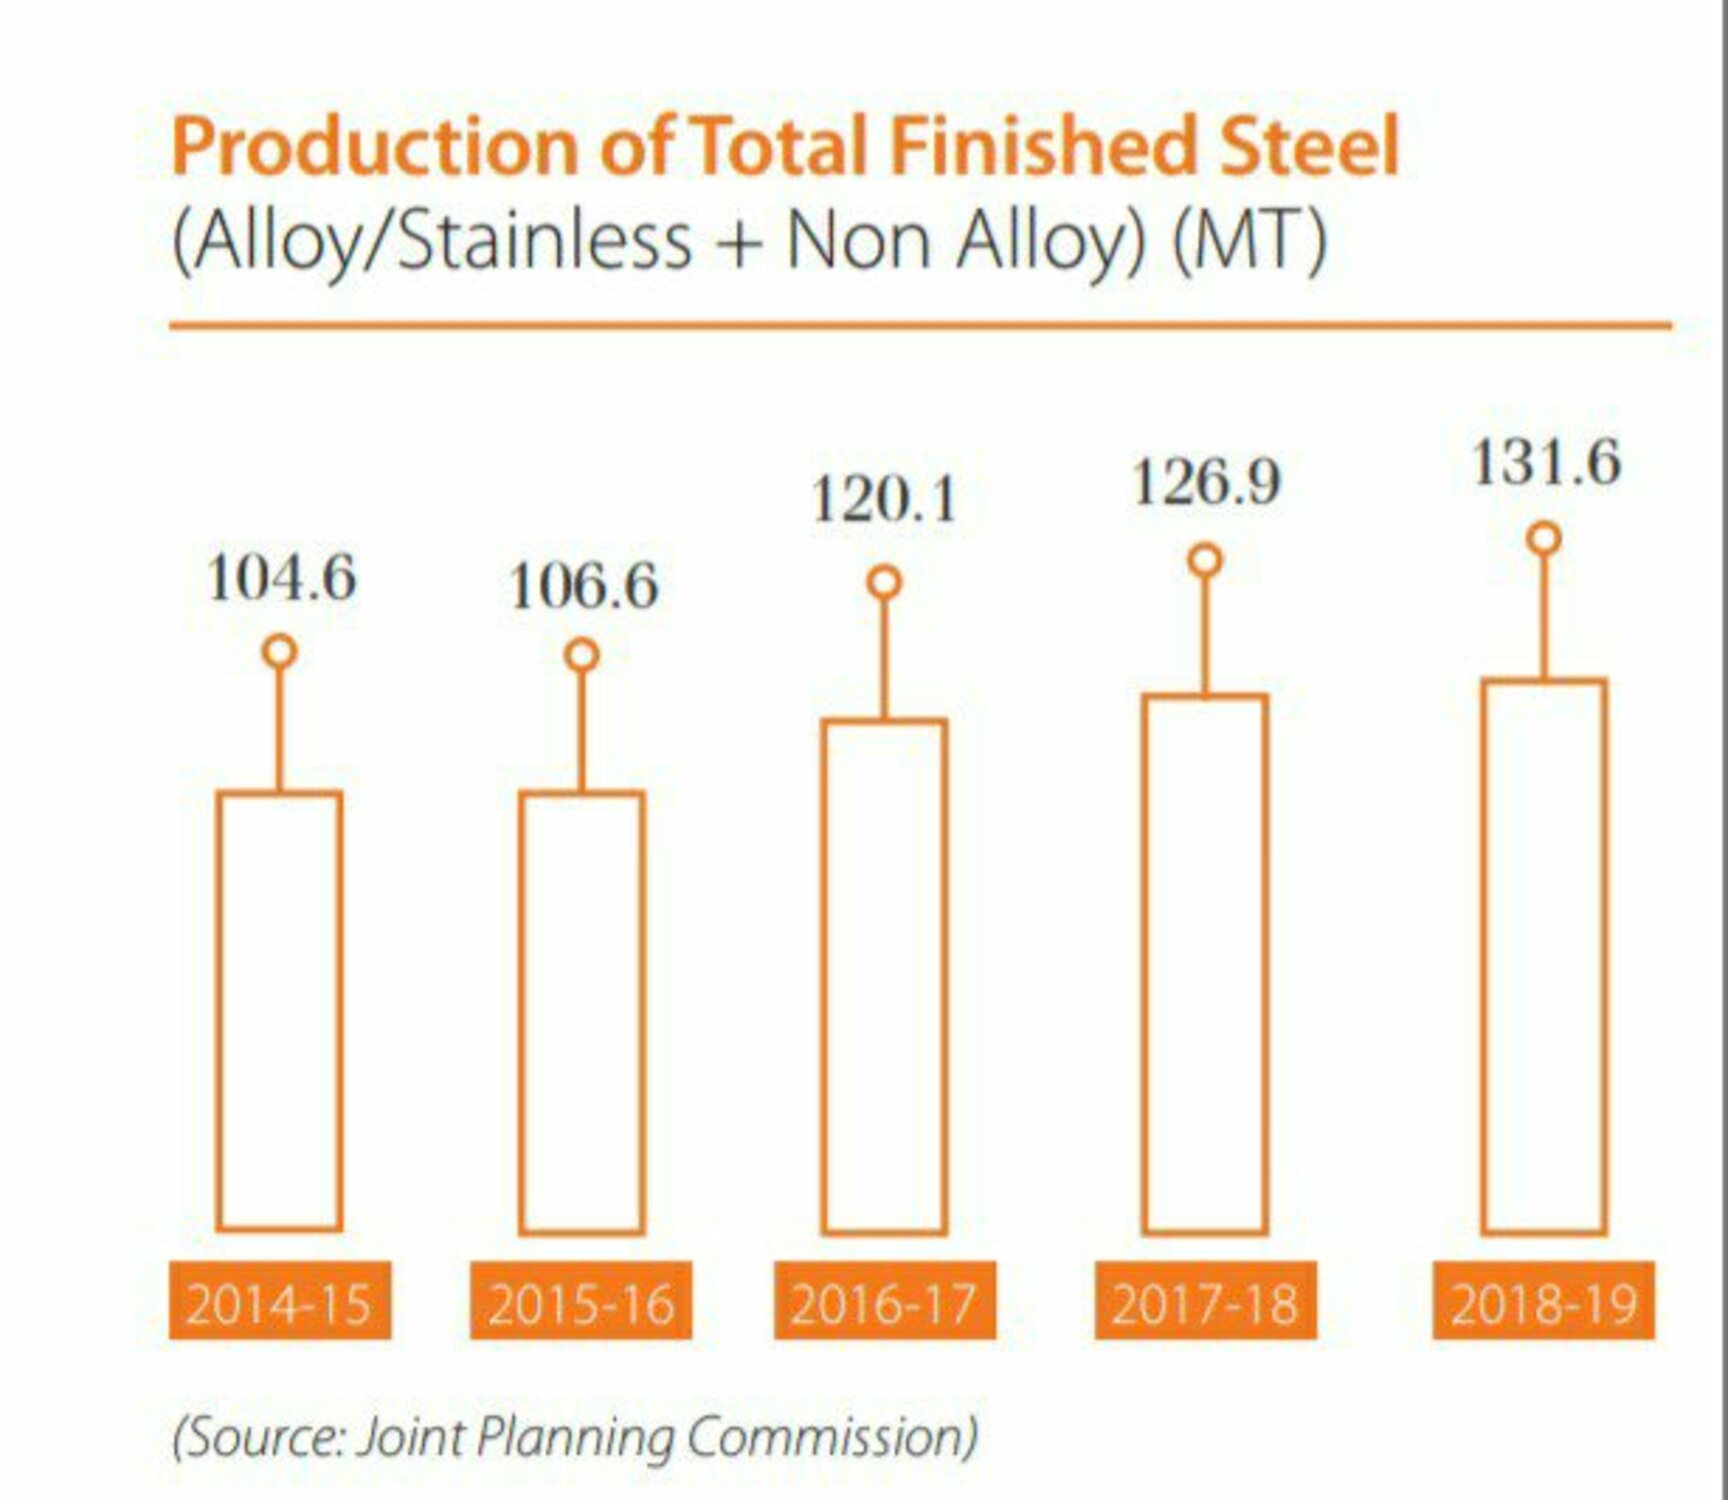 Iron and Steel Industry of India